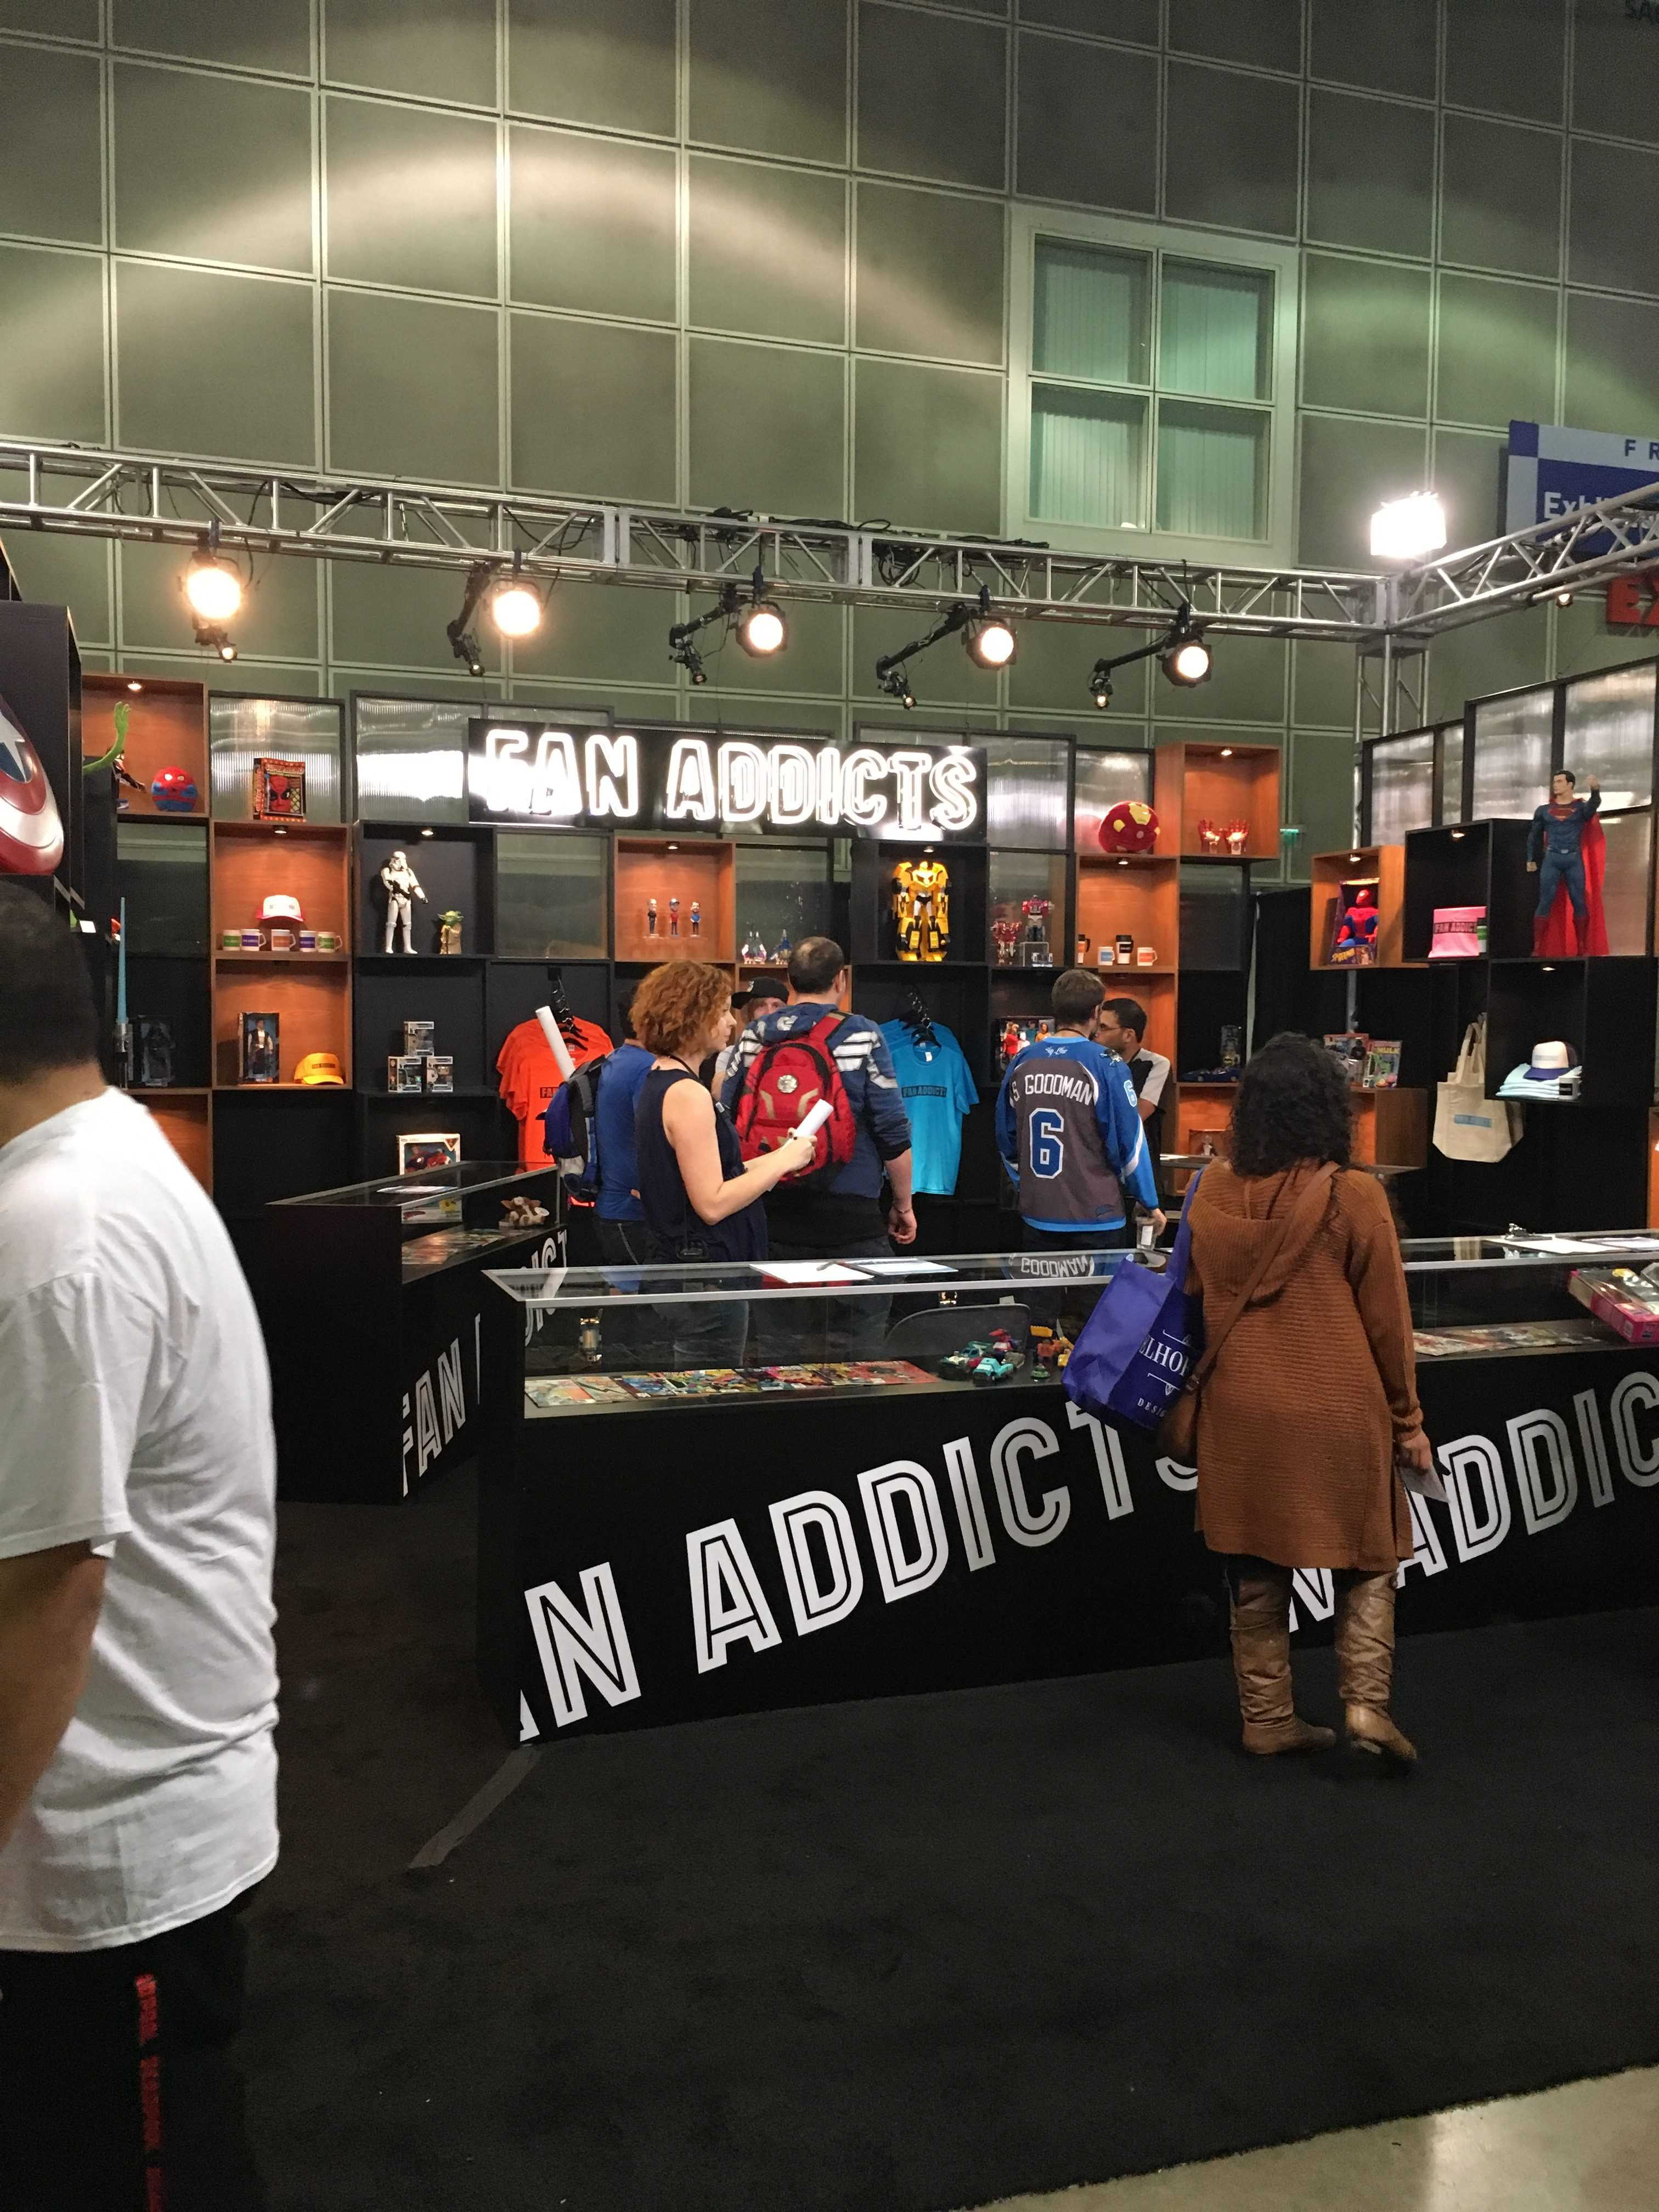 One booth selling merchandise is shown at comic con